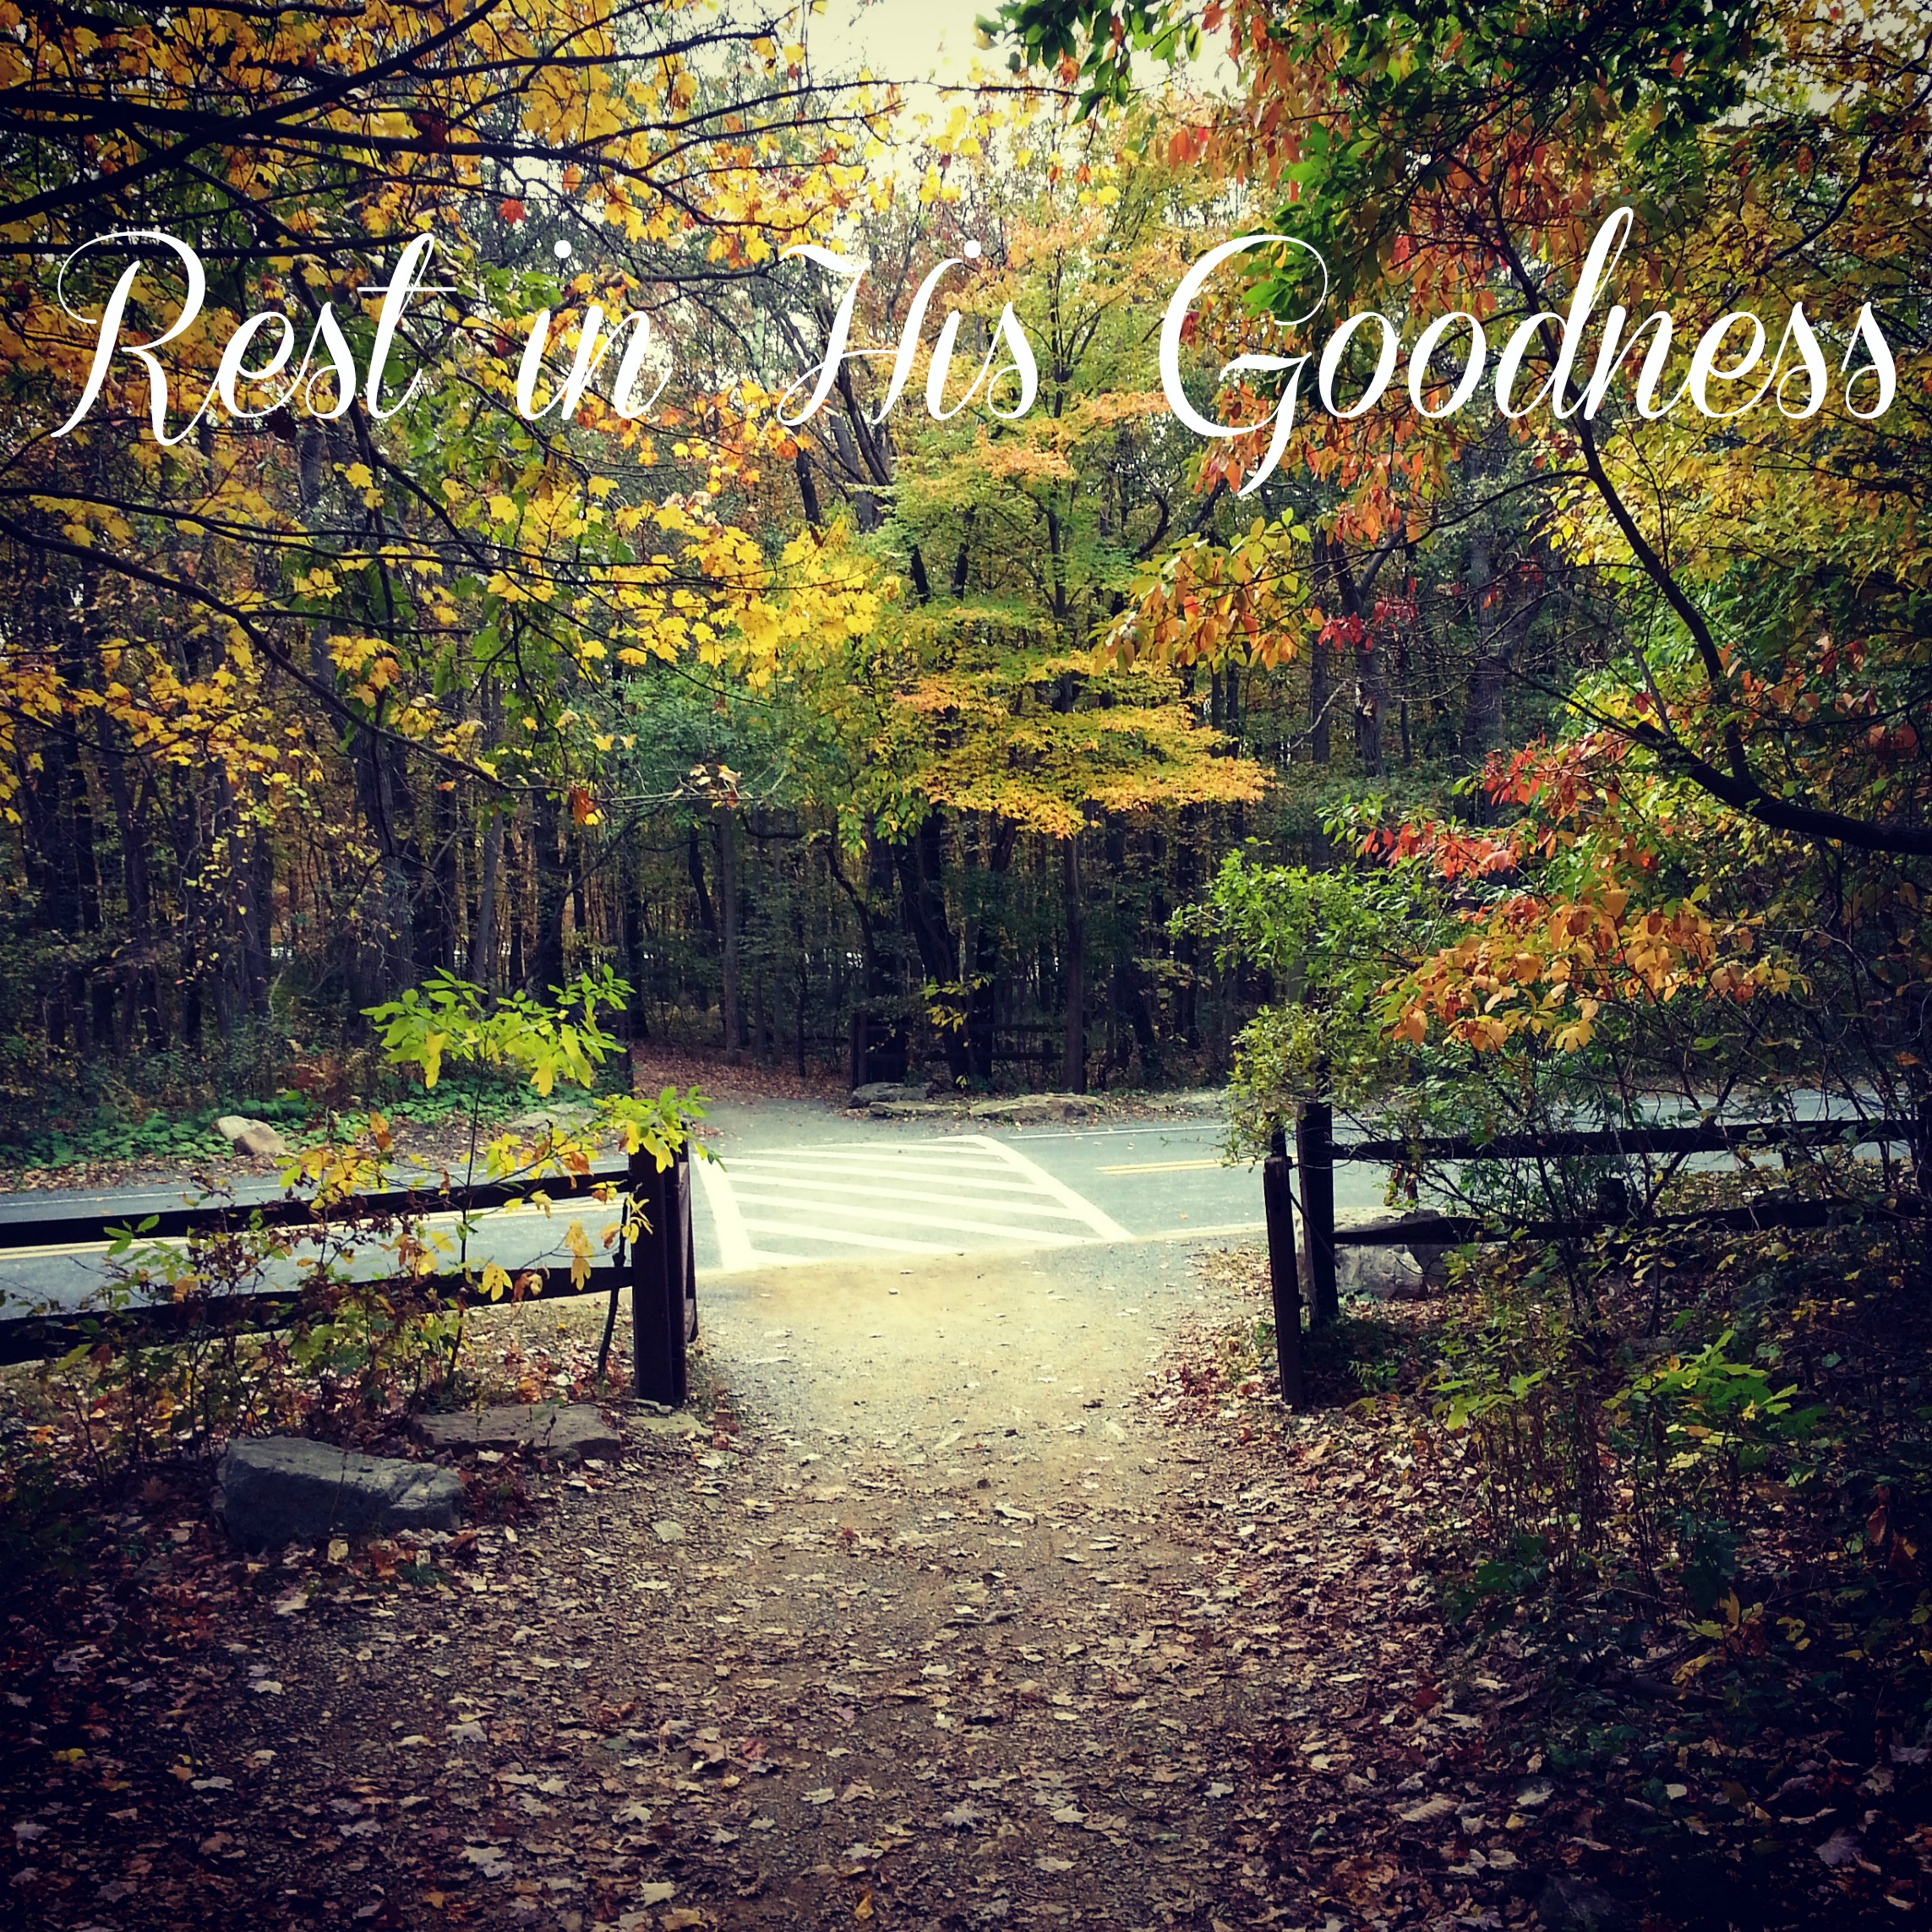 Rest in His goodness